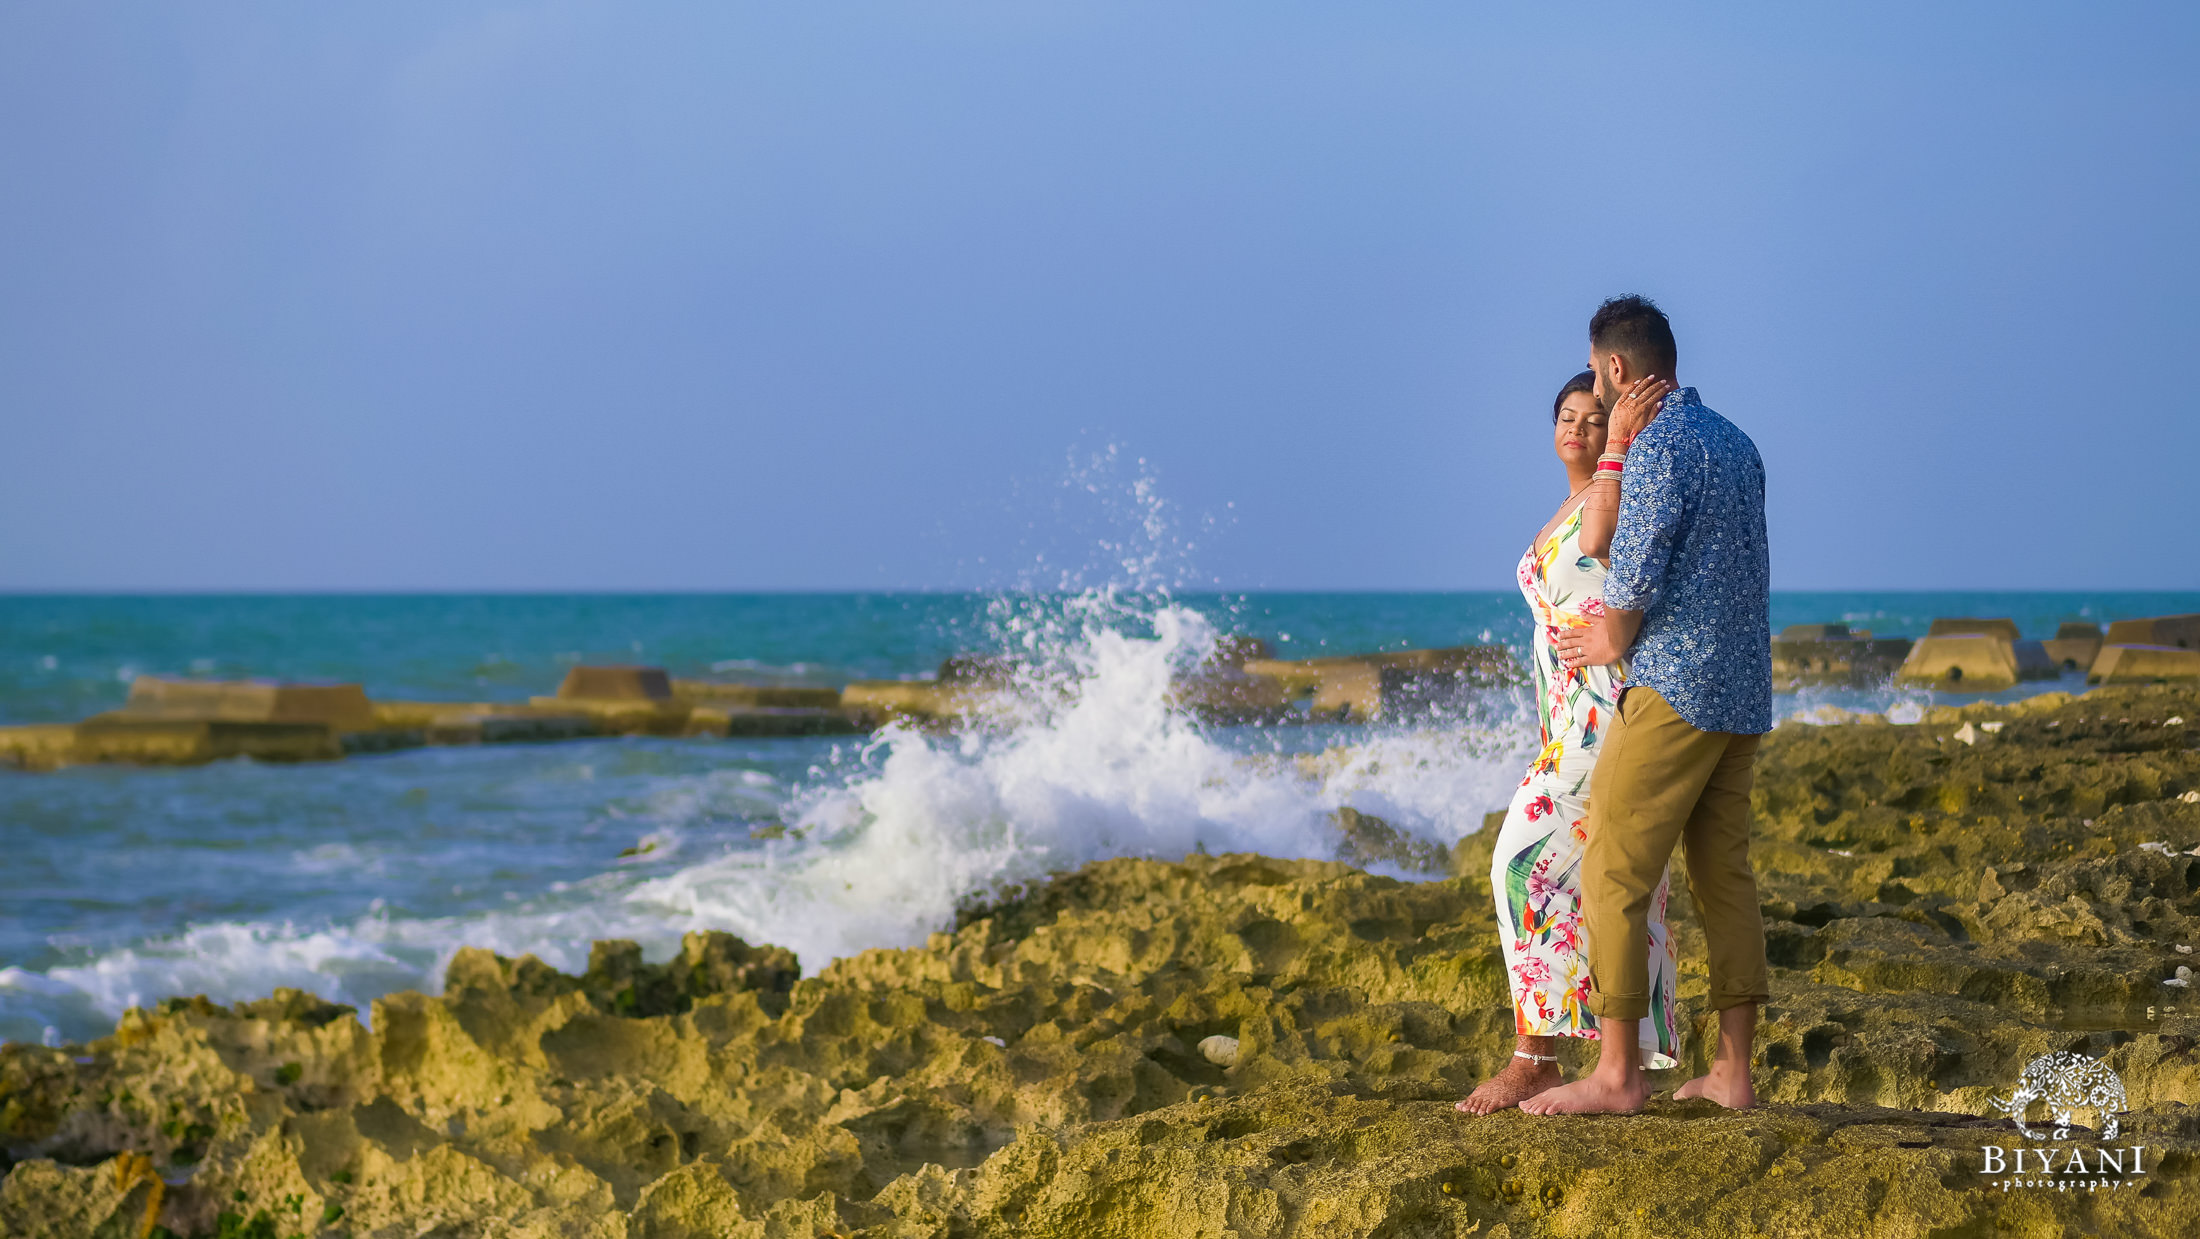 couple posing on rocks with ocean waves splashing in background in Mexico